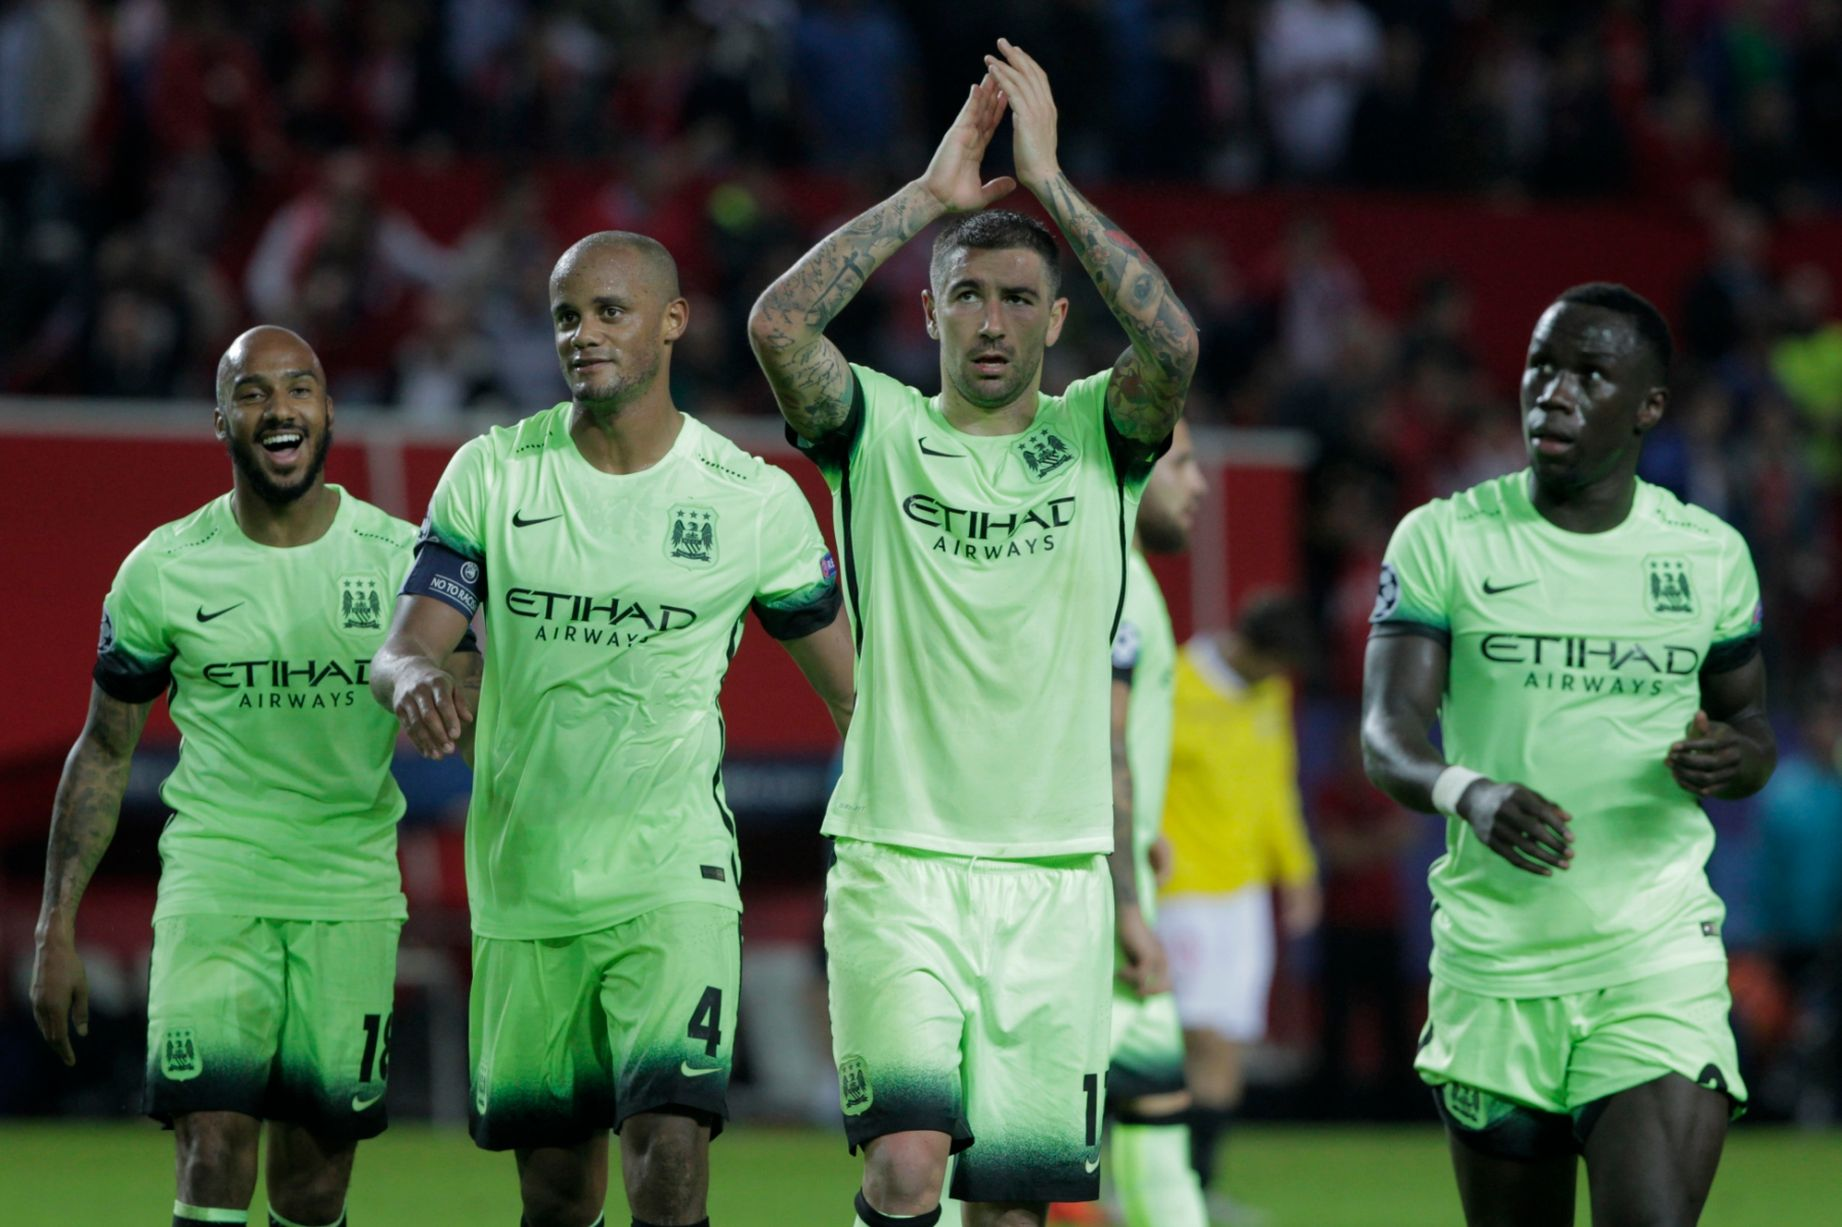 Big hand - City players and supporters alike performed brilliantly in Seville.